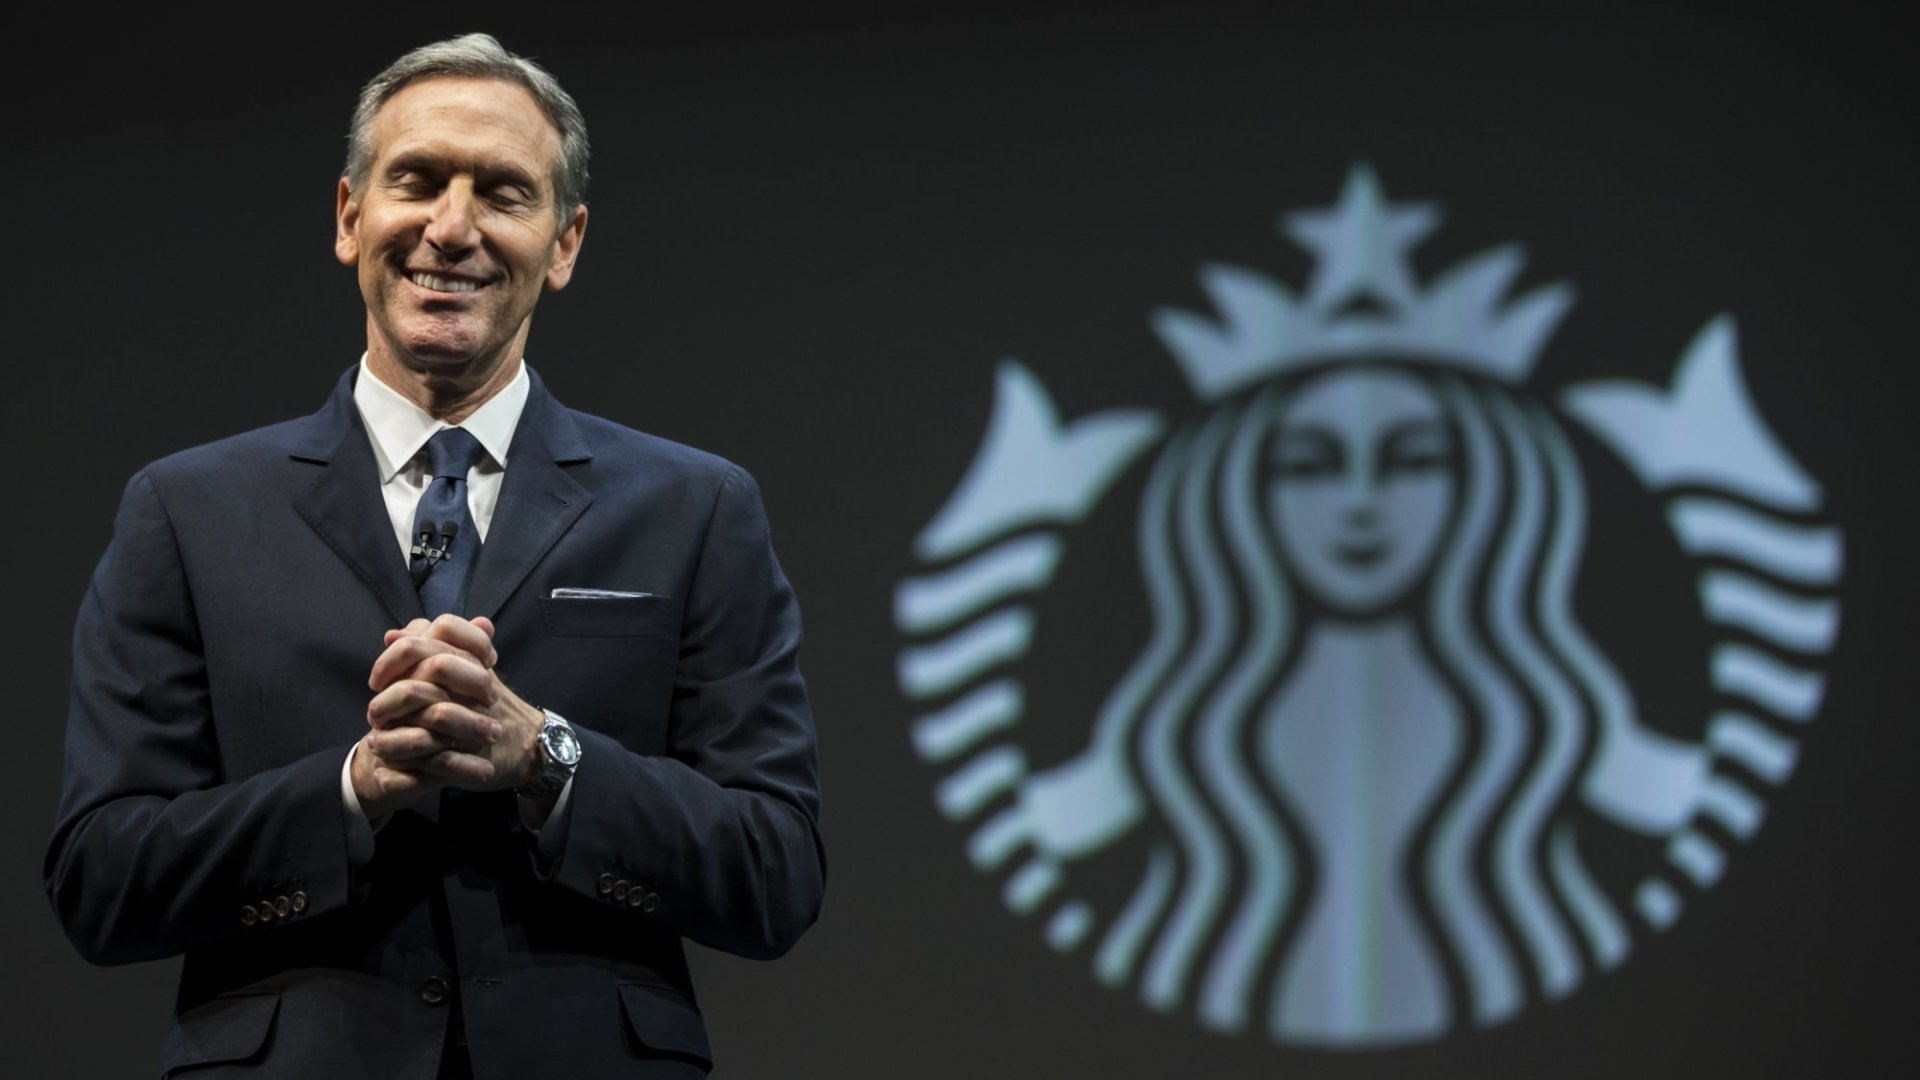 Luck played a big role for Howard Schultz's success with Starbucks.